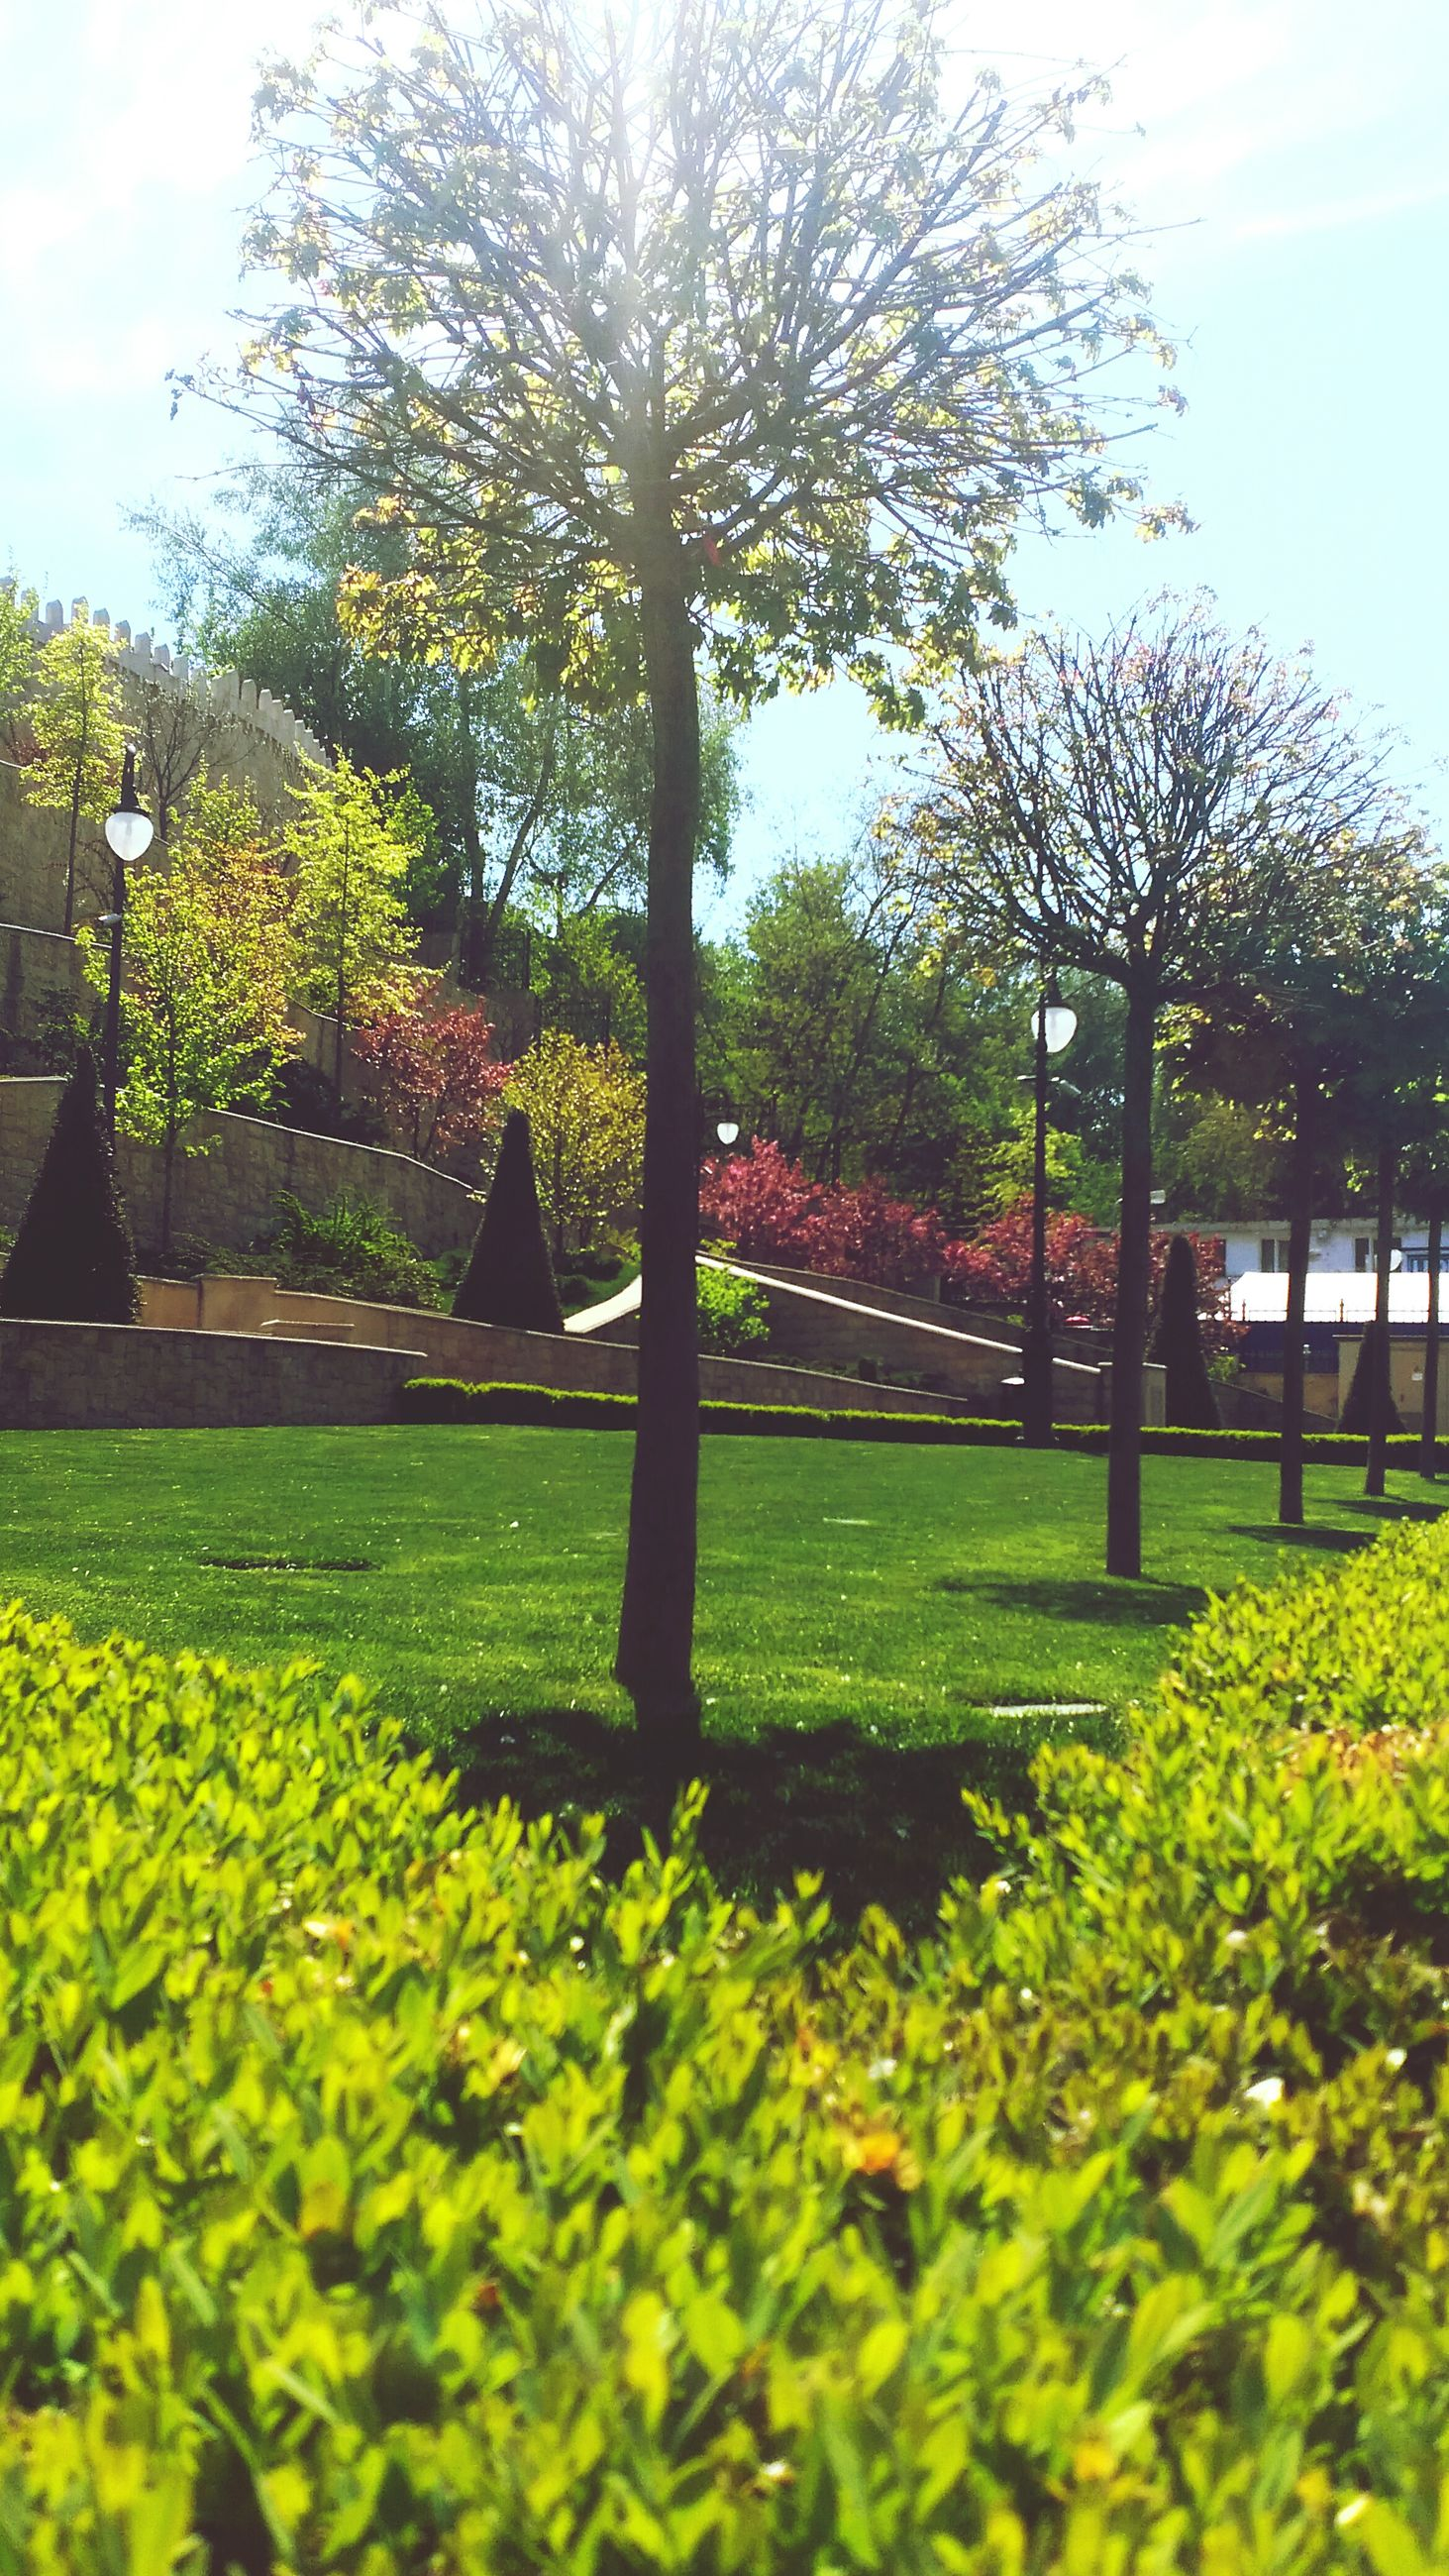 tree, park - man made space, grass, growth, lawn, flower, green color, sunlight, park, nature, built structure, sky, architecture, beauty in nature, plant, building exterior, garden, formal garden, tranquility, freshness